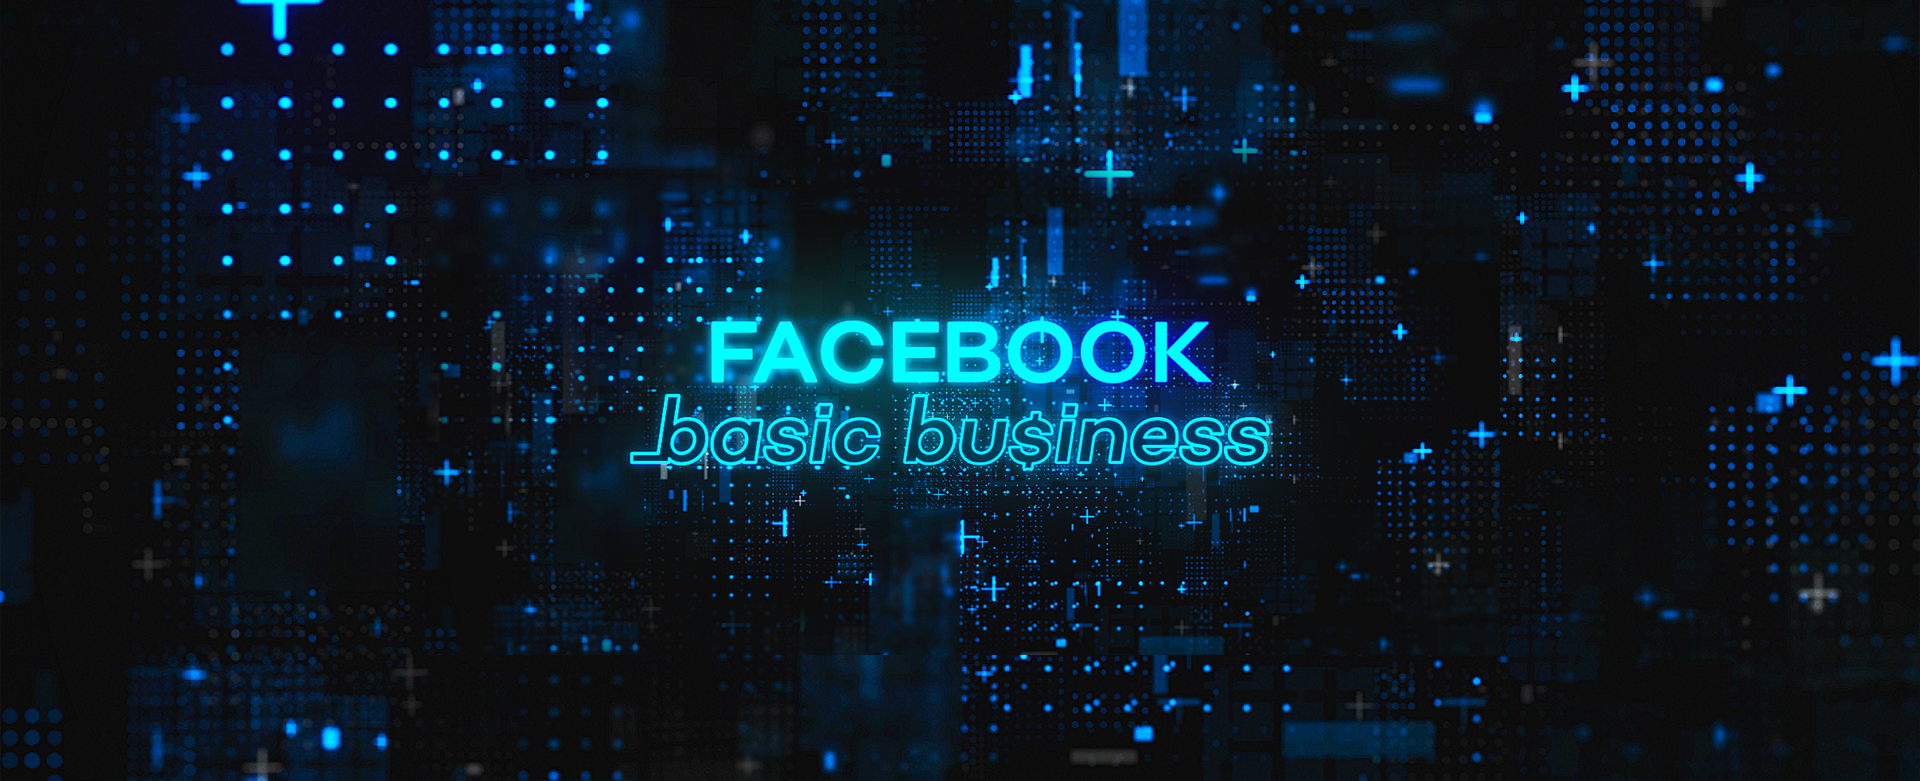 Facebook Basic Business